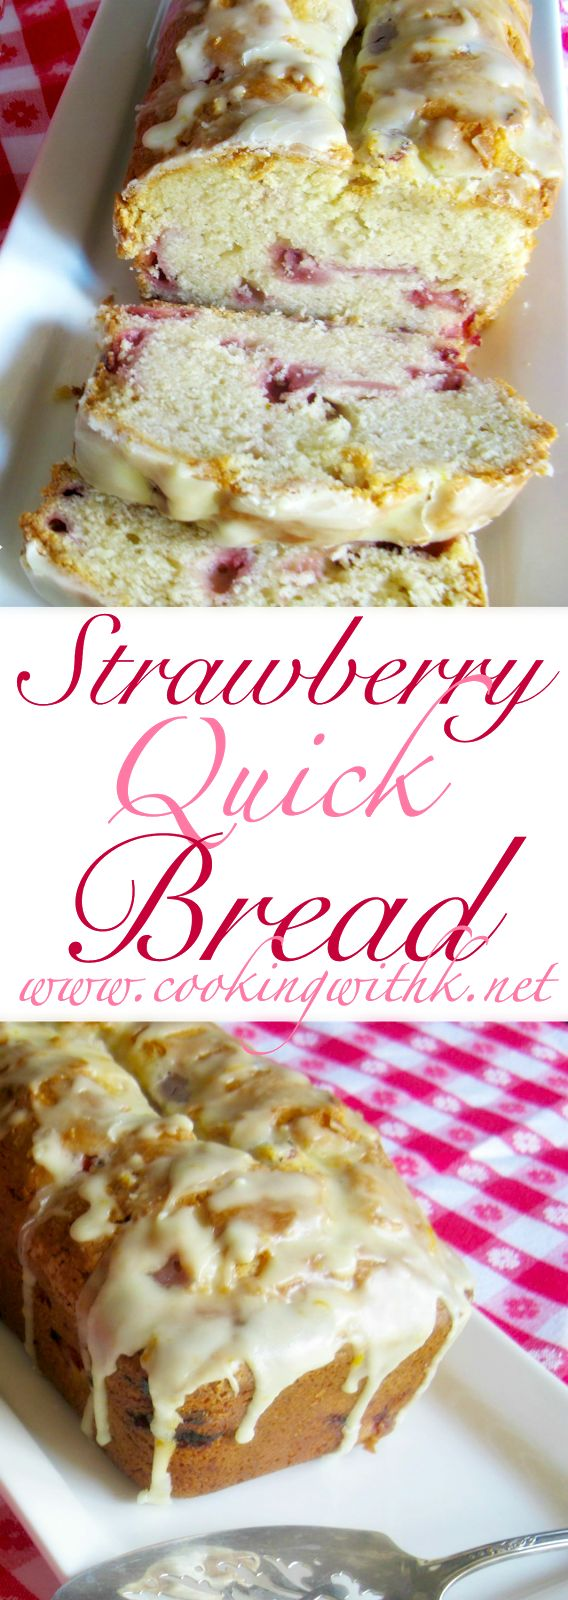 Strawberry Quick Bread will get you in the mood for Spring.  It is full of fresh strawberries and covered with a simple glaze.  We love this bread for breakfast, but who says you can't  have it for dessert with a dollop of whip cream and some Chunky Strawberry Sauce?